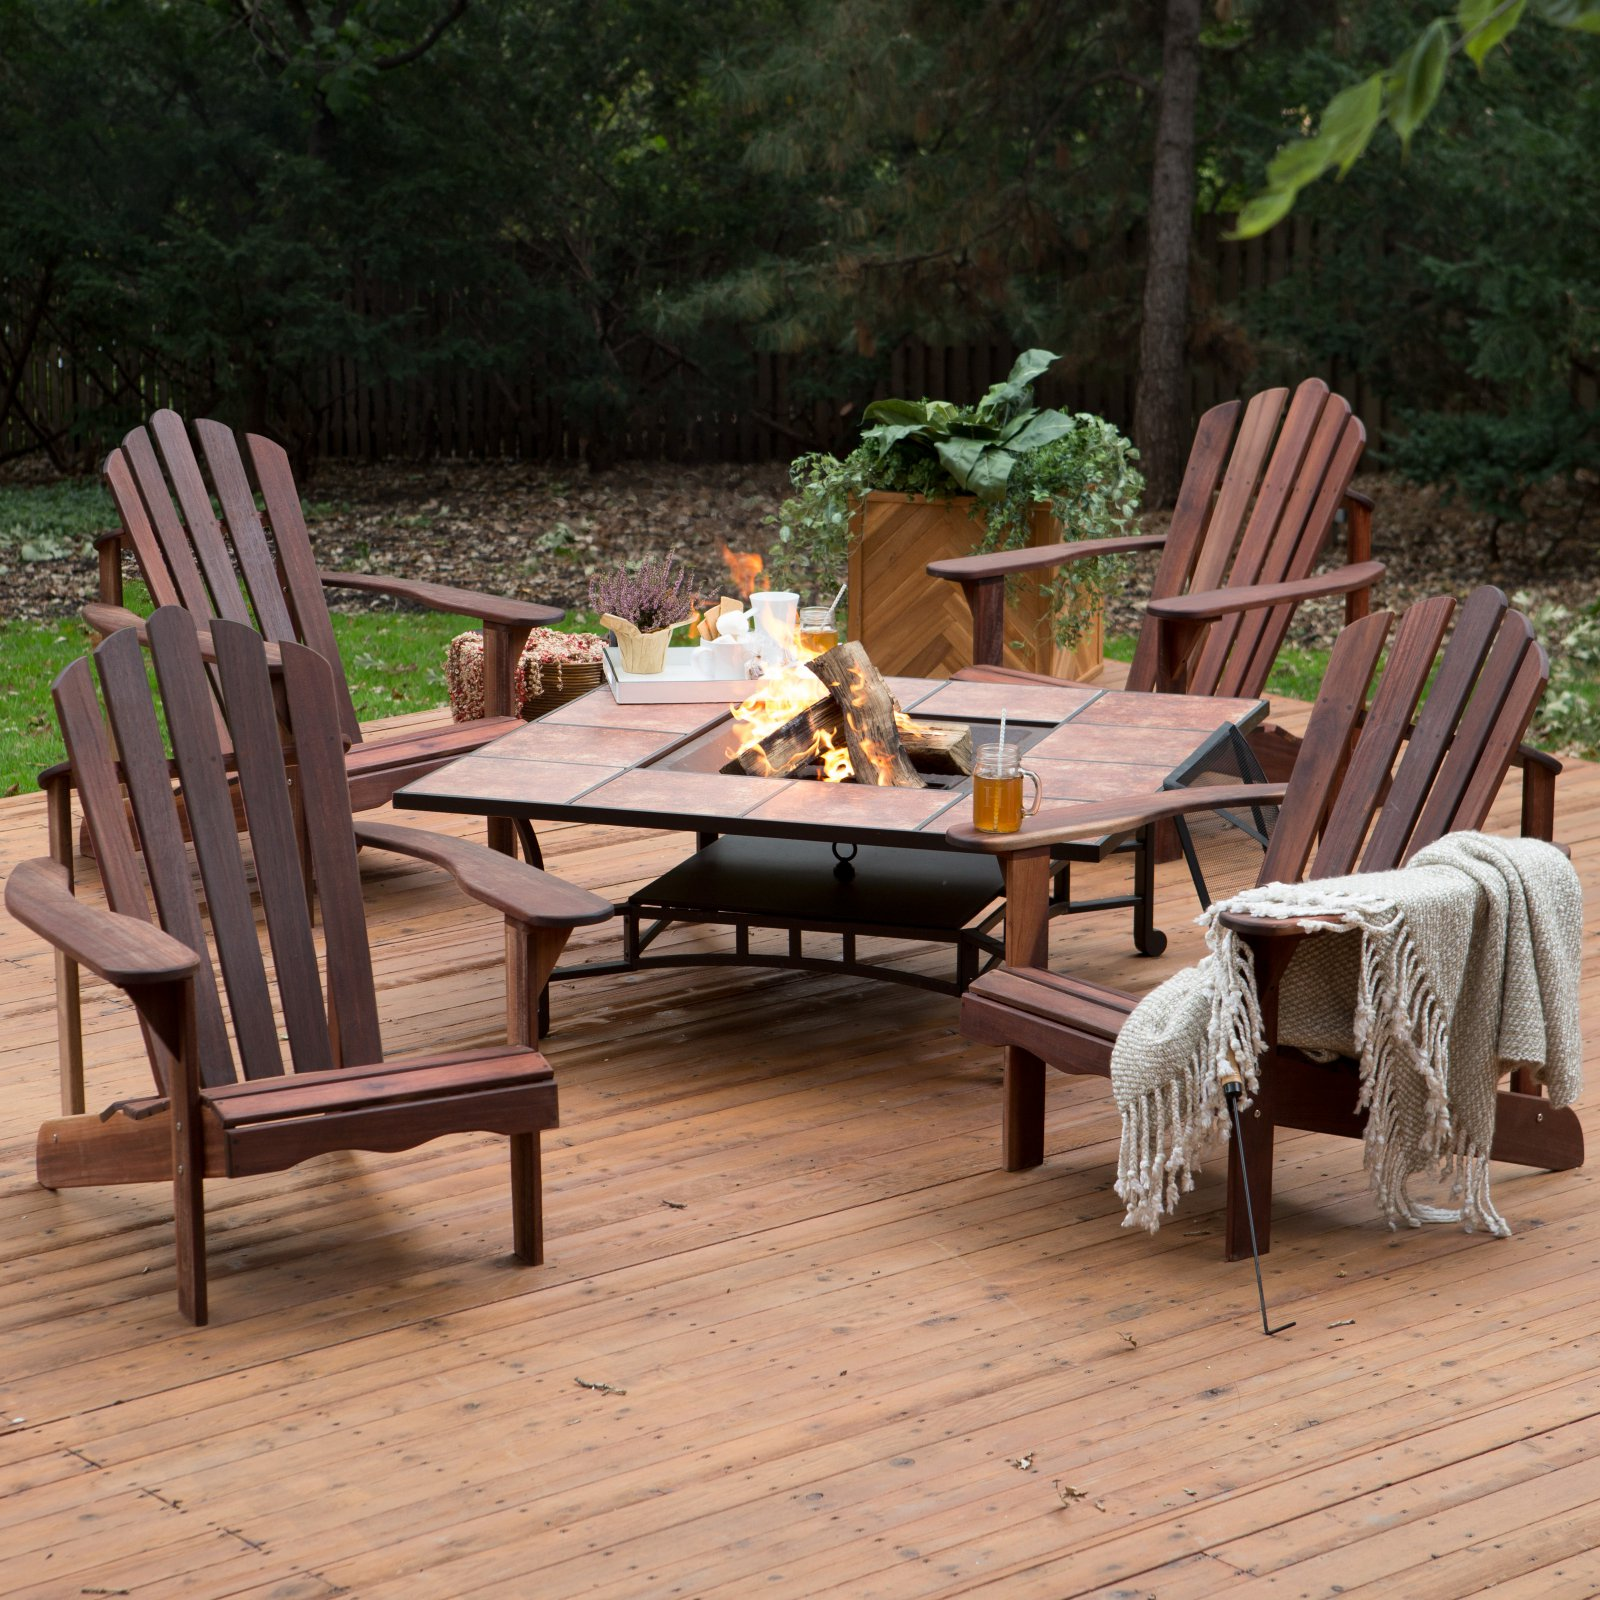 Belham Living Richmond Deluxe 5 Piece Adirondack Chair Fire Pit Chat Set : adirondack chairs and table set - pezcame.com